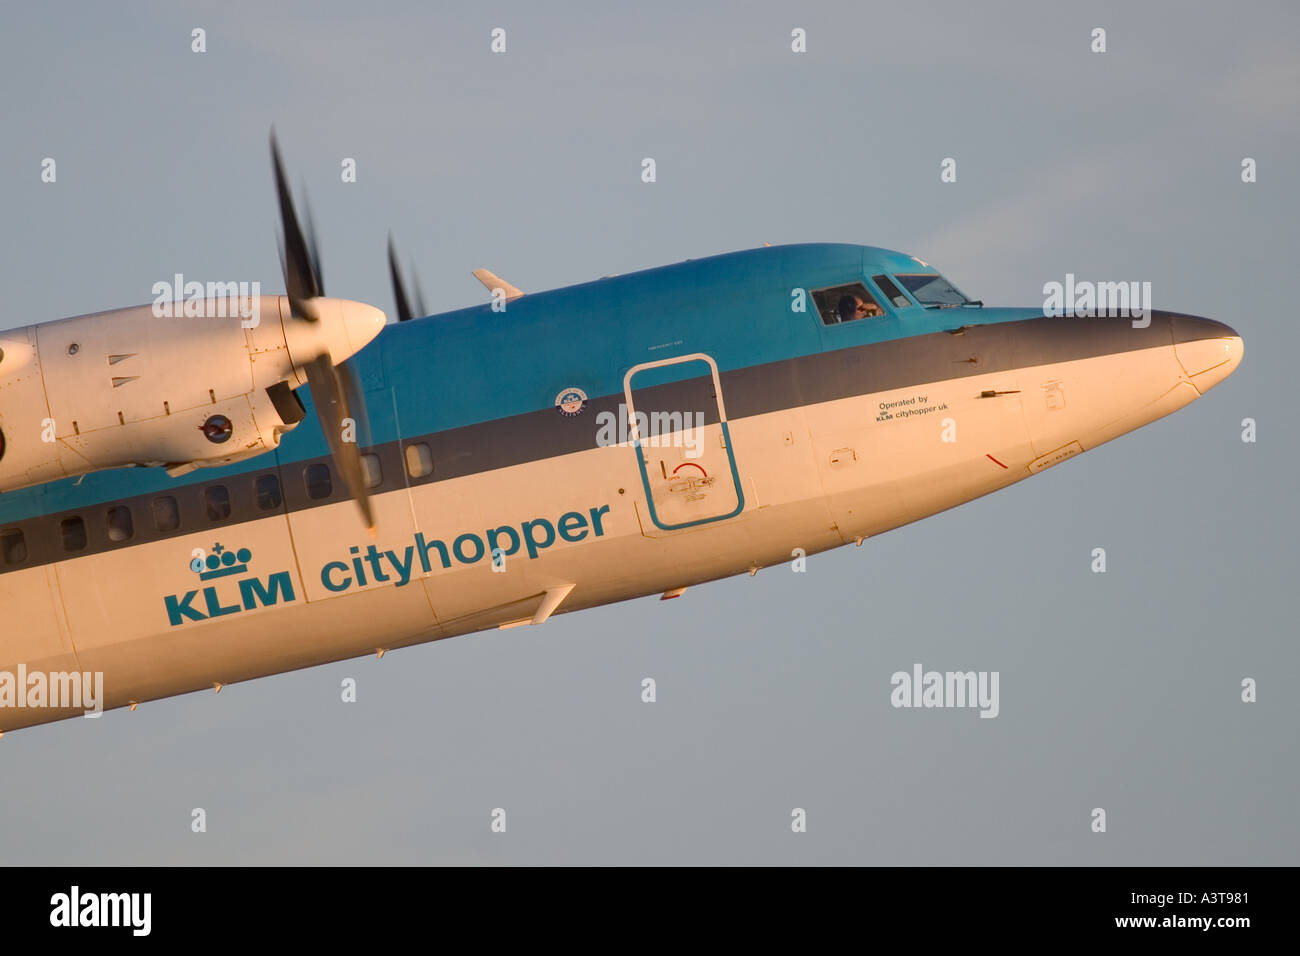 Commercial aircraft Fokker 50 KLM taking off at London City Airport, England, UK - Stock Image